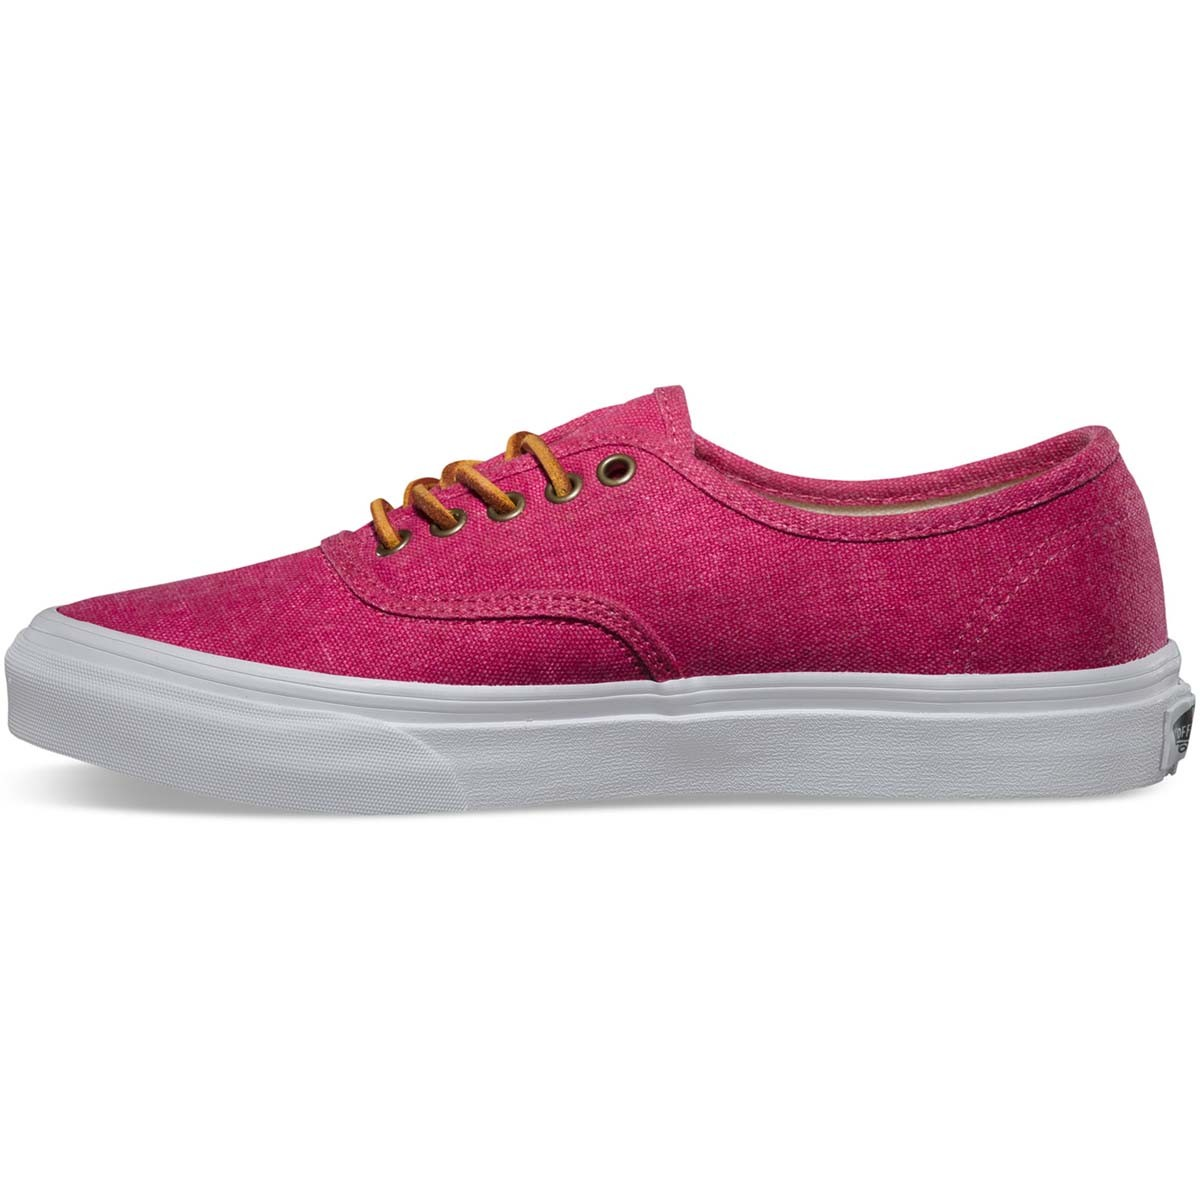 vans washed authentic slim womens shoes $ 32 97 $ 54 95 select color